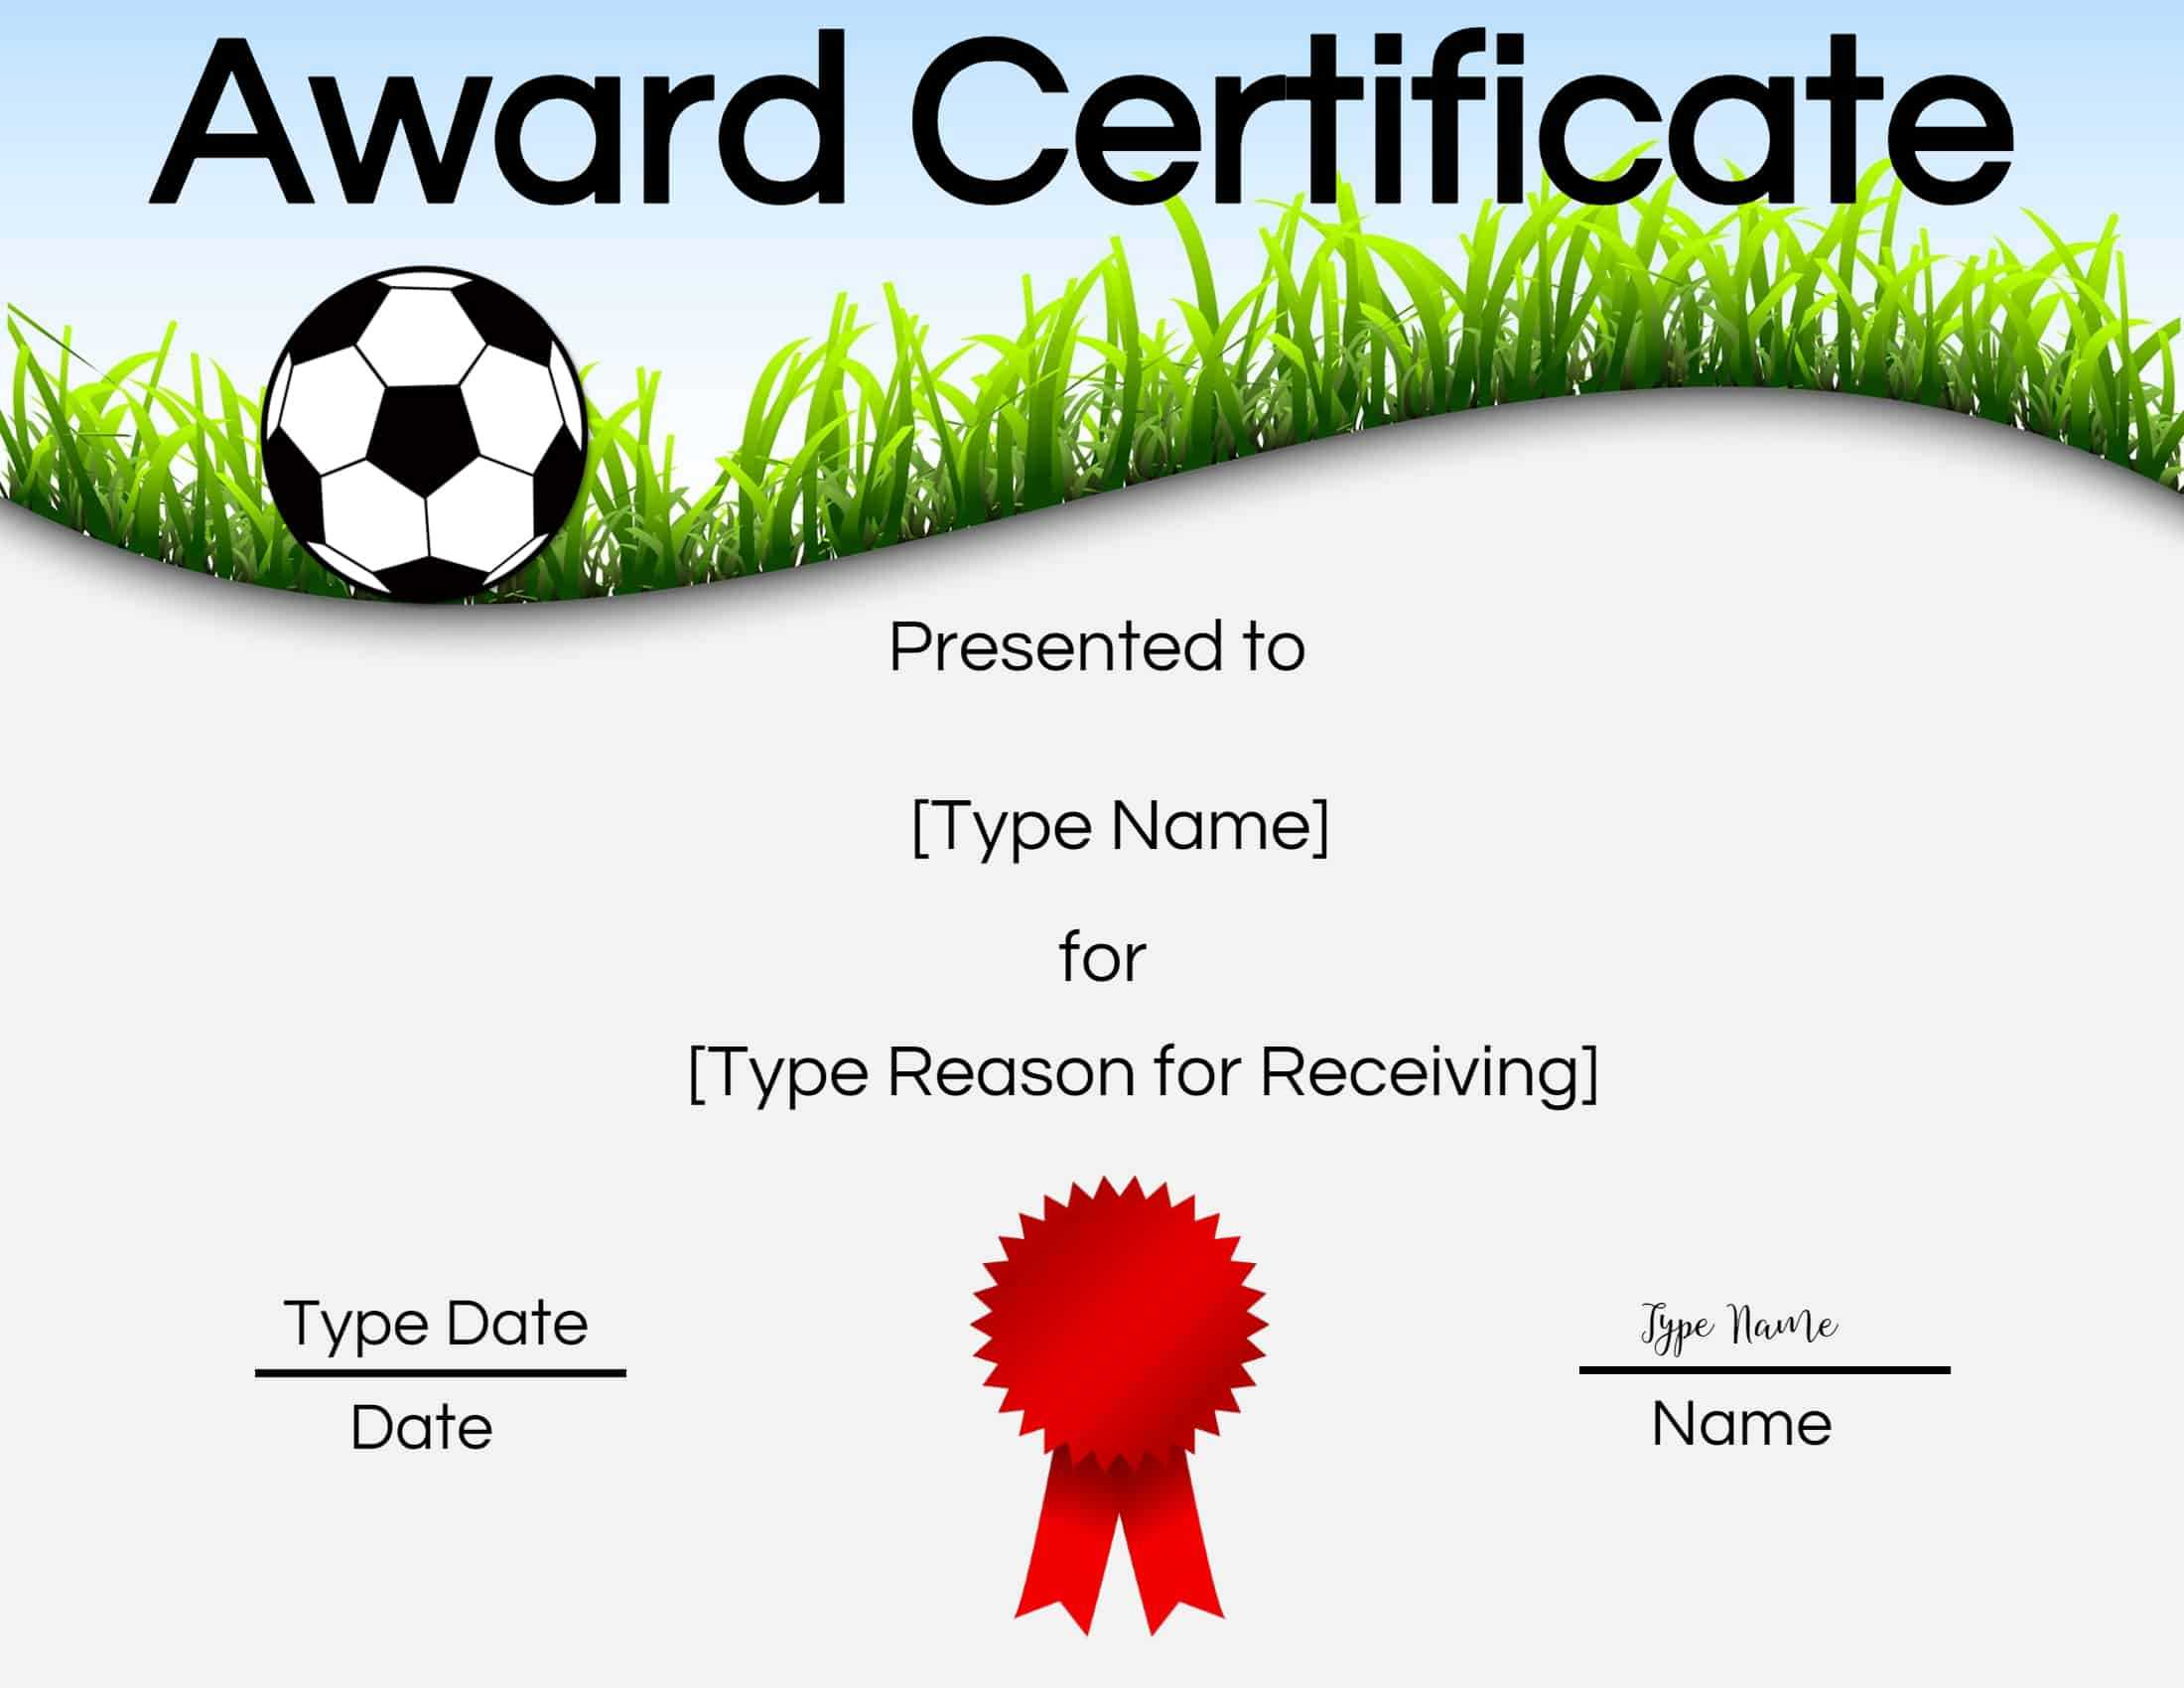 Free Soccer Certificate Maker | Edit Online And Print At Home within Soccer Certificate Templates For Word